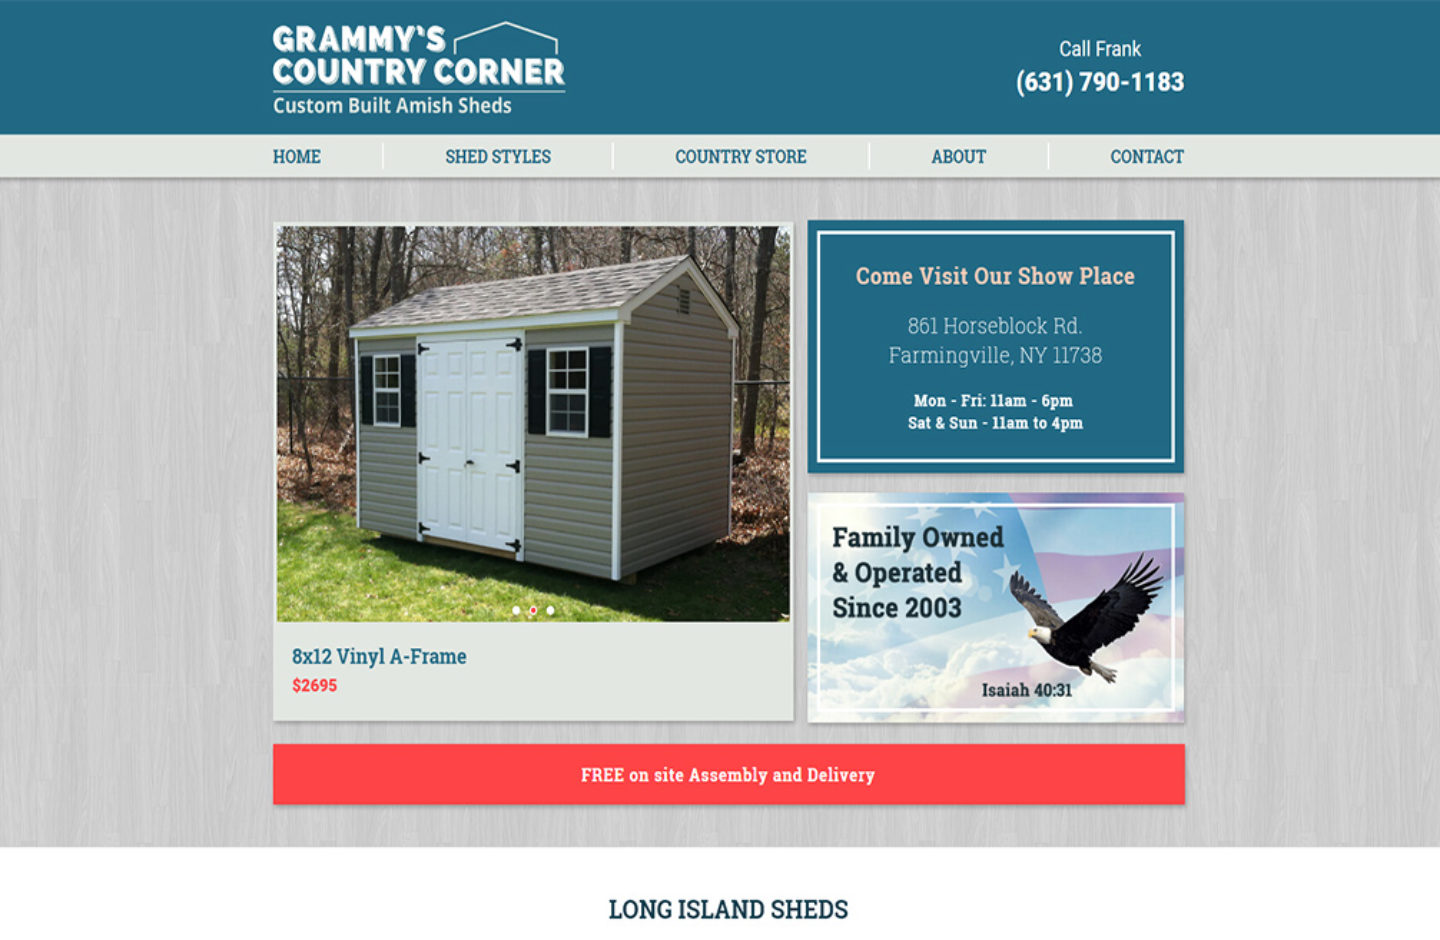 Grammy's Country Corner